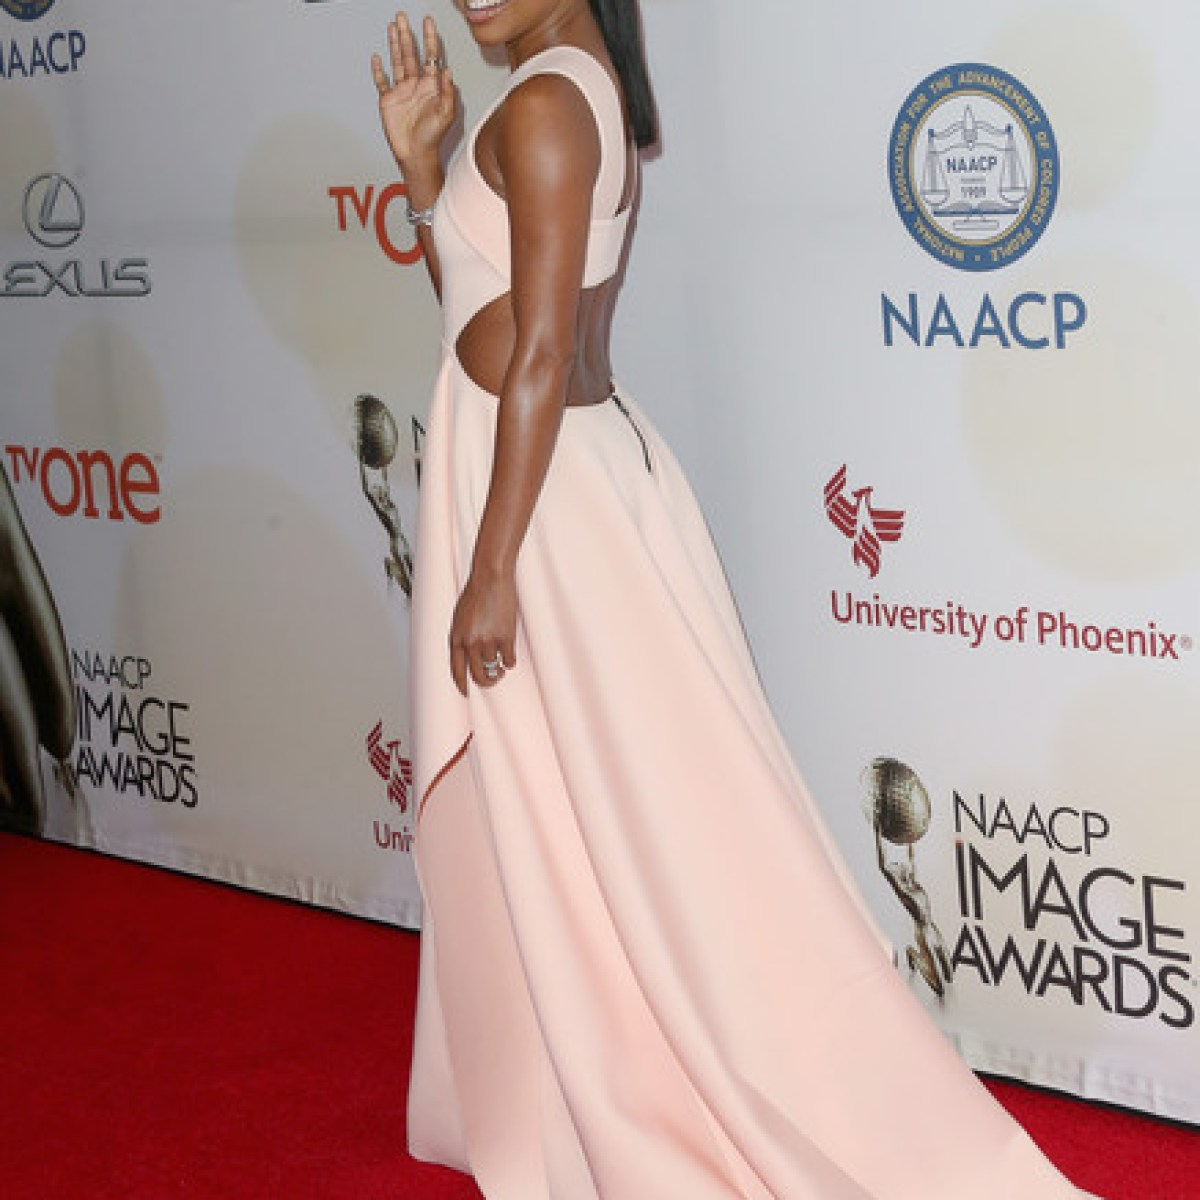 Gabrielle Union NAACP Image Awards 2015 Style Stamped2